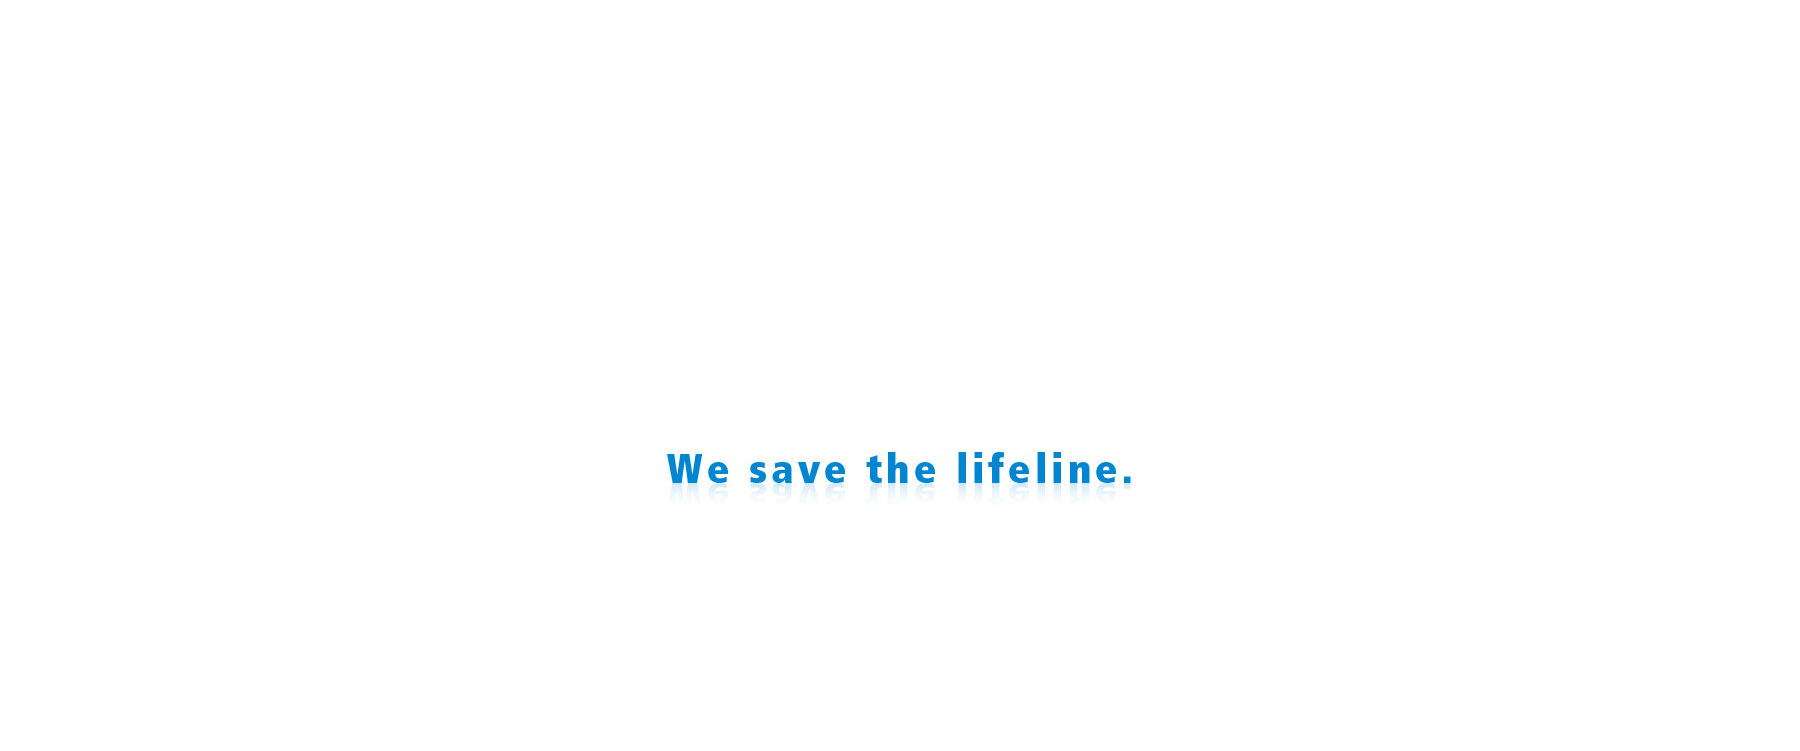 We save the lifeline